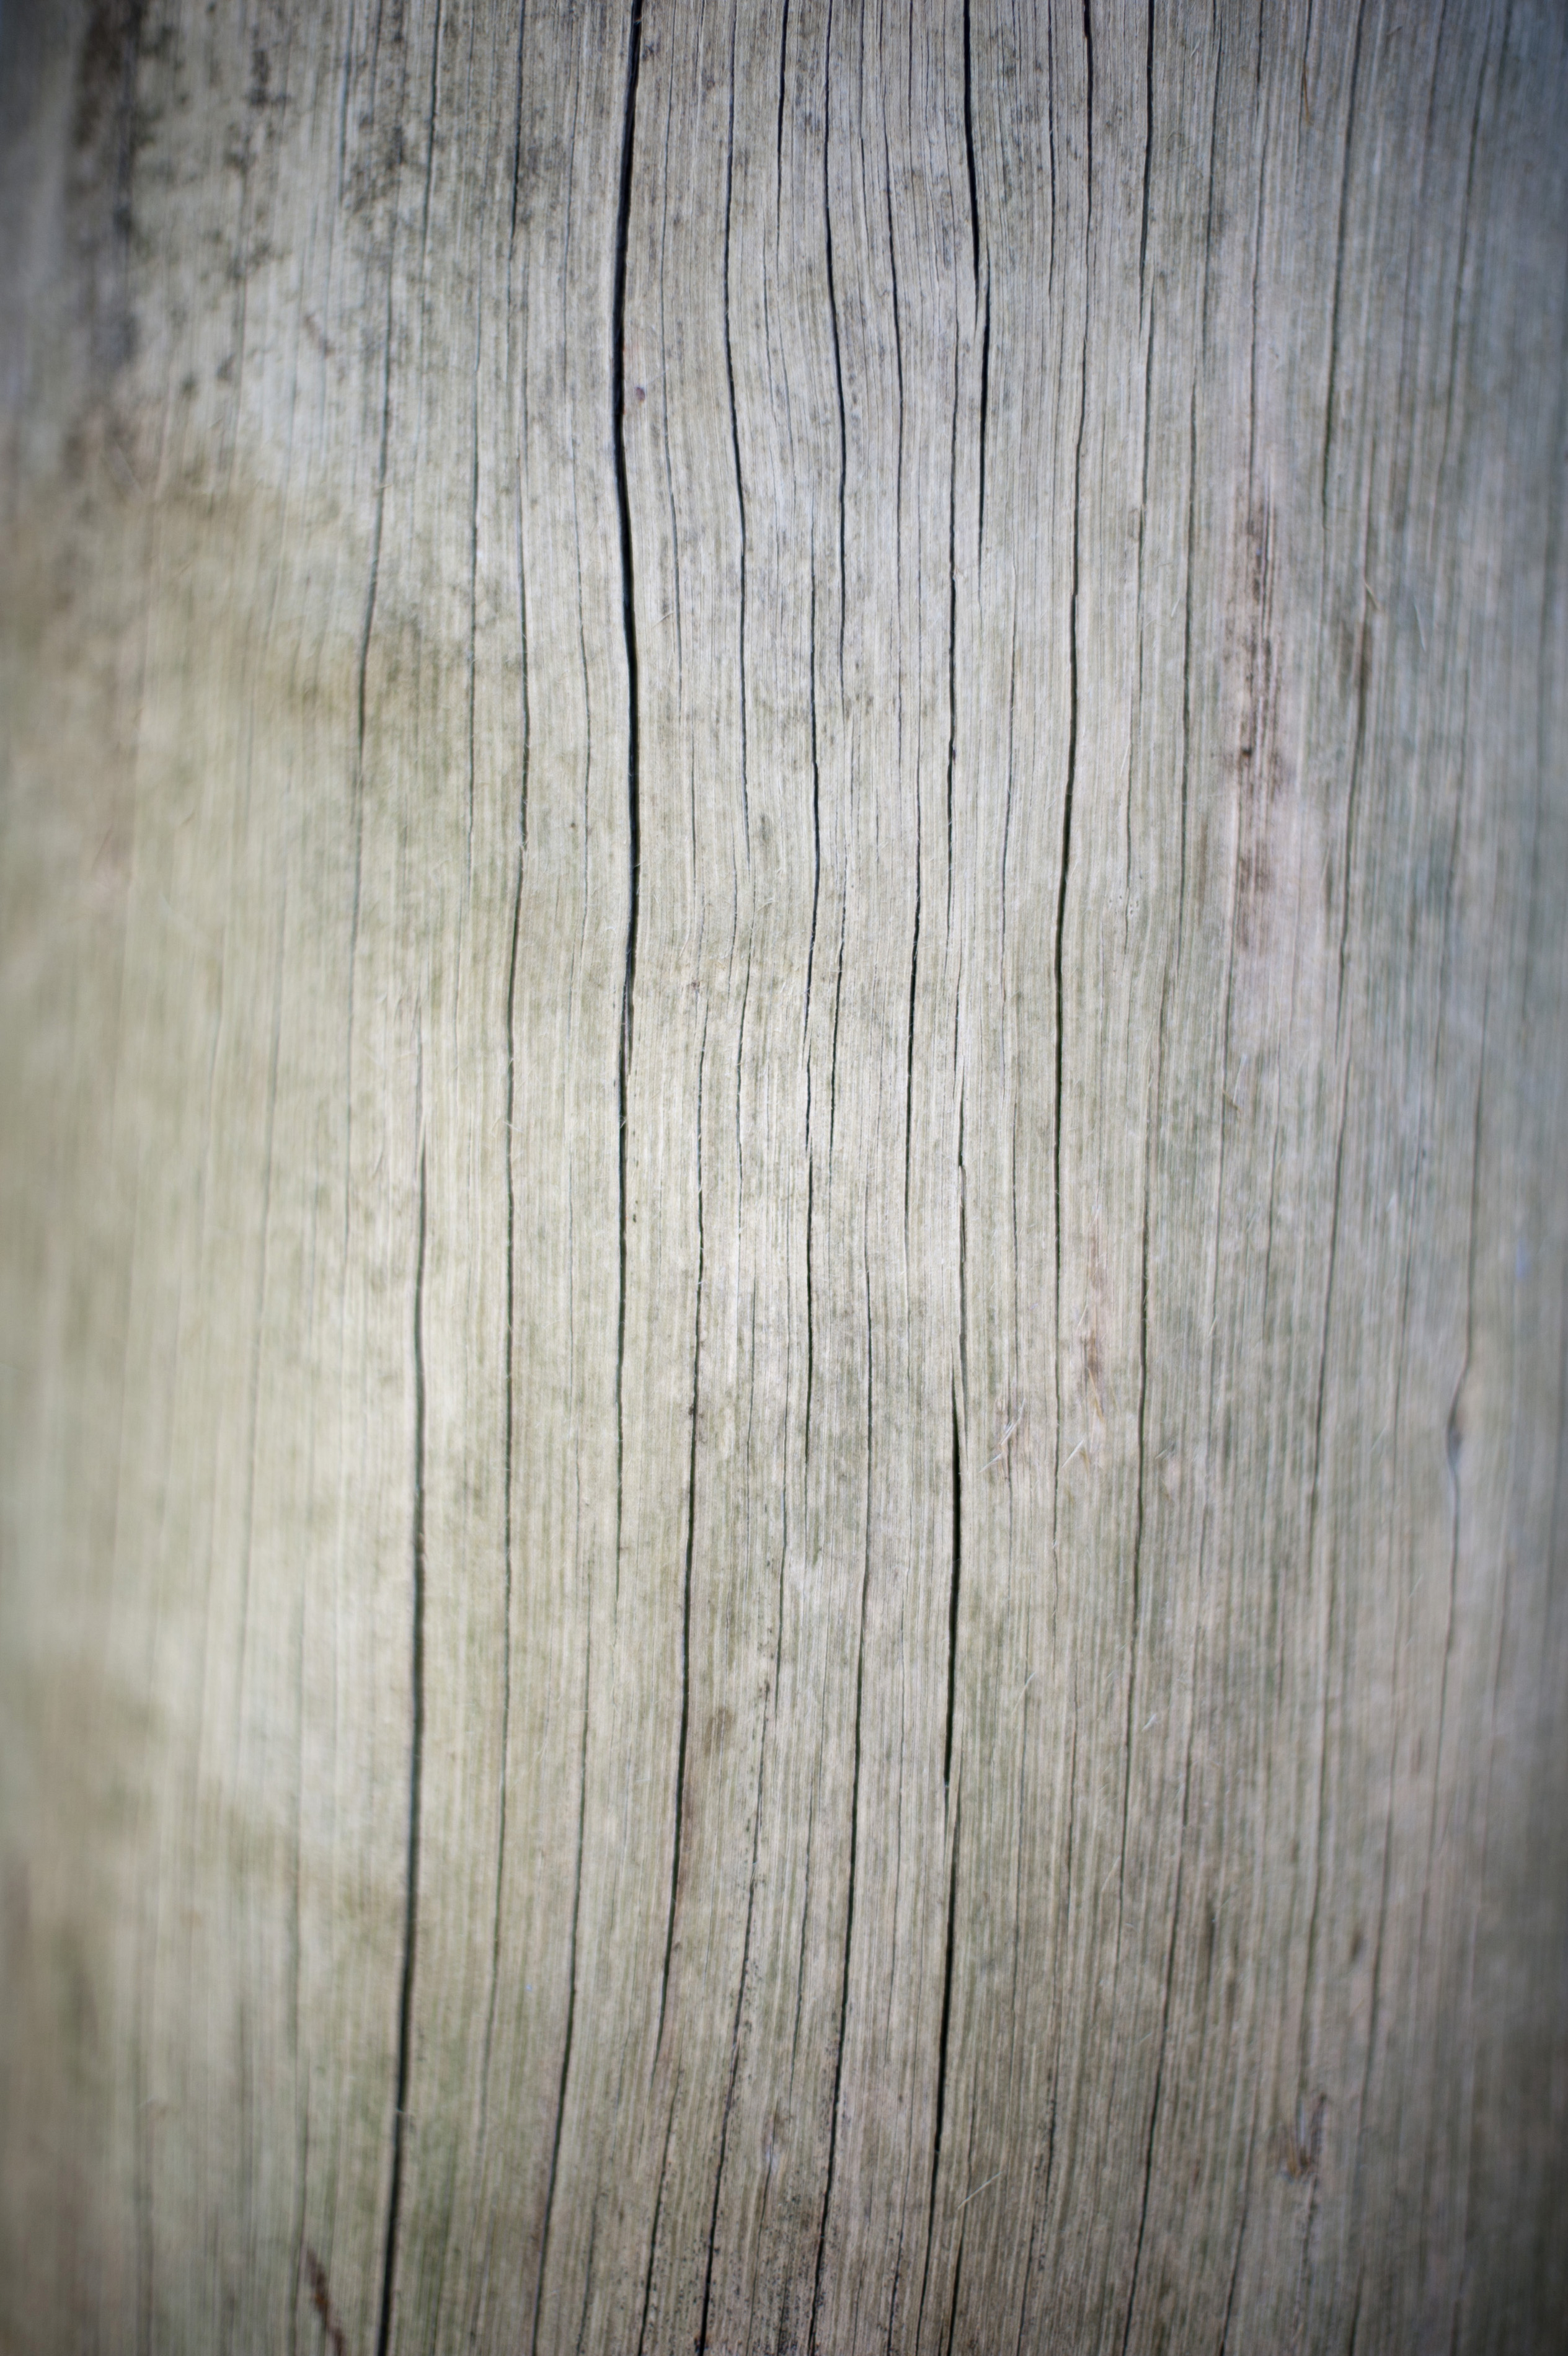 Old grunge wooden surface photo